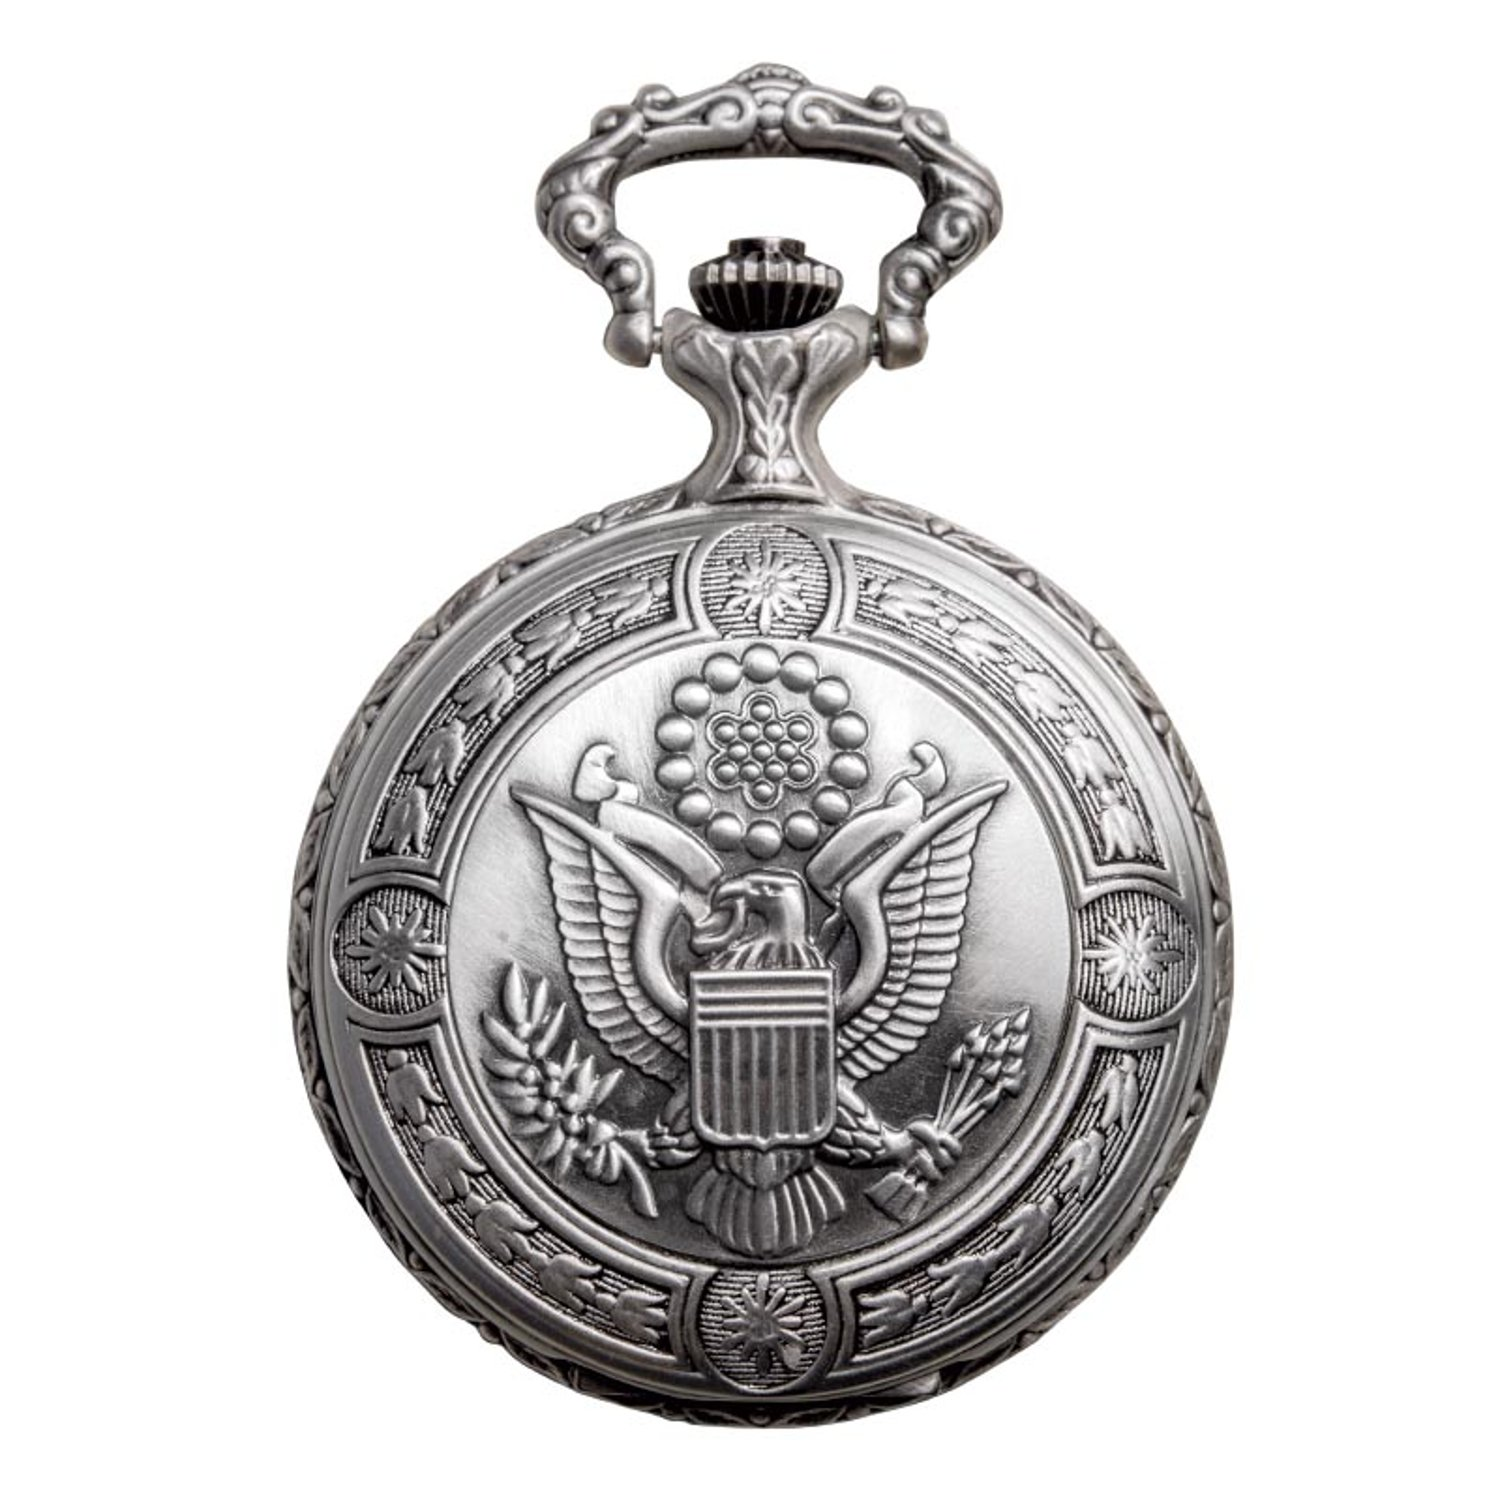 Daniel Steiger Flying Eagle Luxury Vintage Hunter Pocket Watch - Hand-Made Hunter Pocket Watch - Engraved Flying Eagle Design - White Dial With Black Roman Numerals by Daniel Steiger